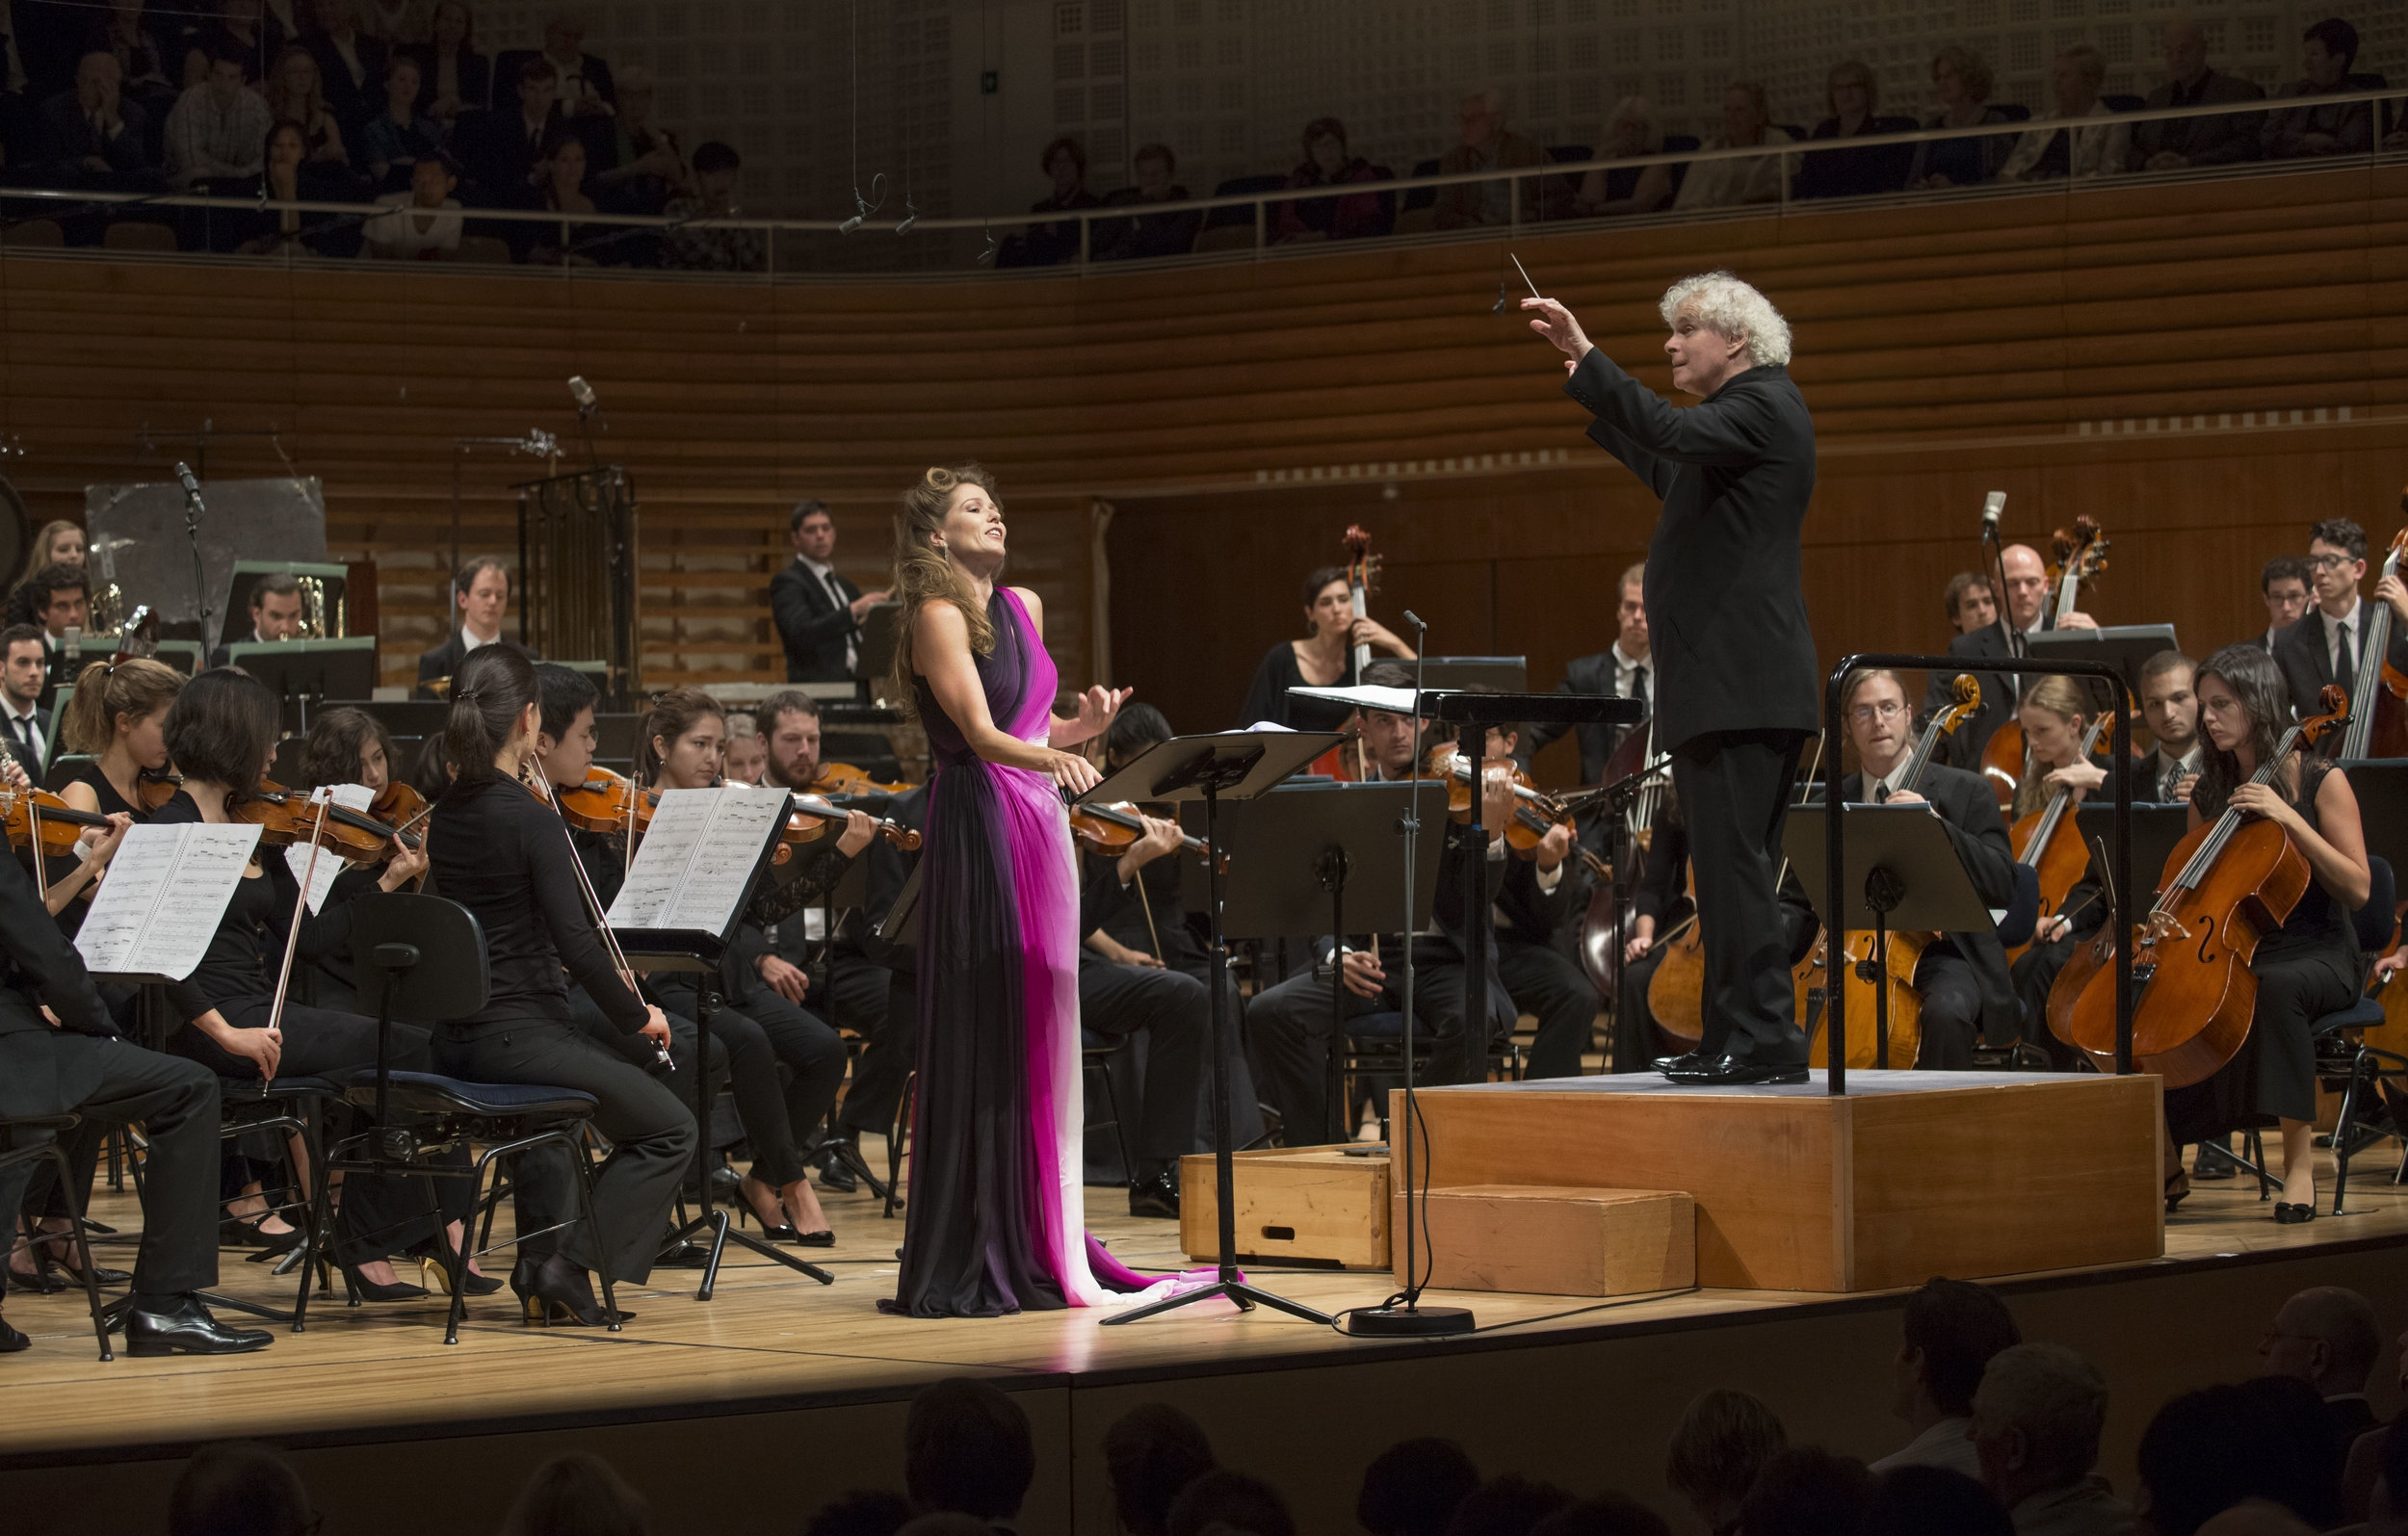 Barbara Hannigan, Sir Simon Rattle, and the Berliner Philharmoniker deliver the world premiere of  Le Silence des Sirènes  for soprano and orchestra, August 23, 2014. Photograph courtesy of the Lucerne Festival. Copyright Priska Ketterer/Lucerne Festival.